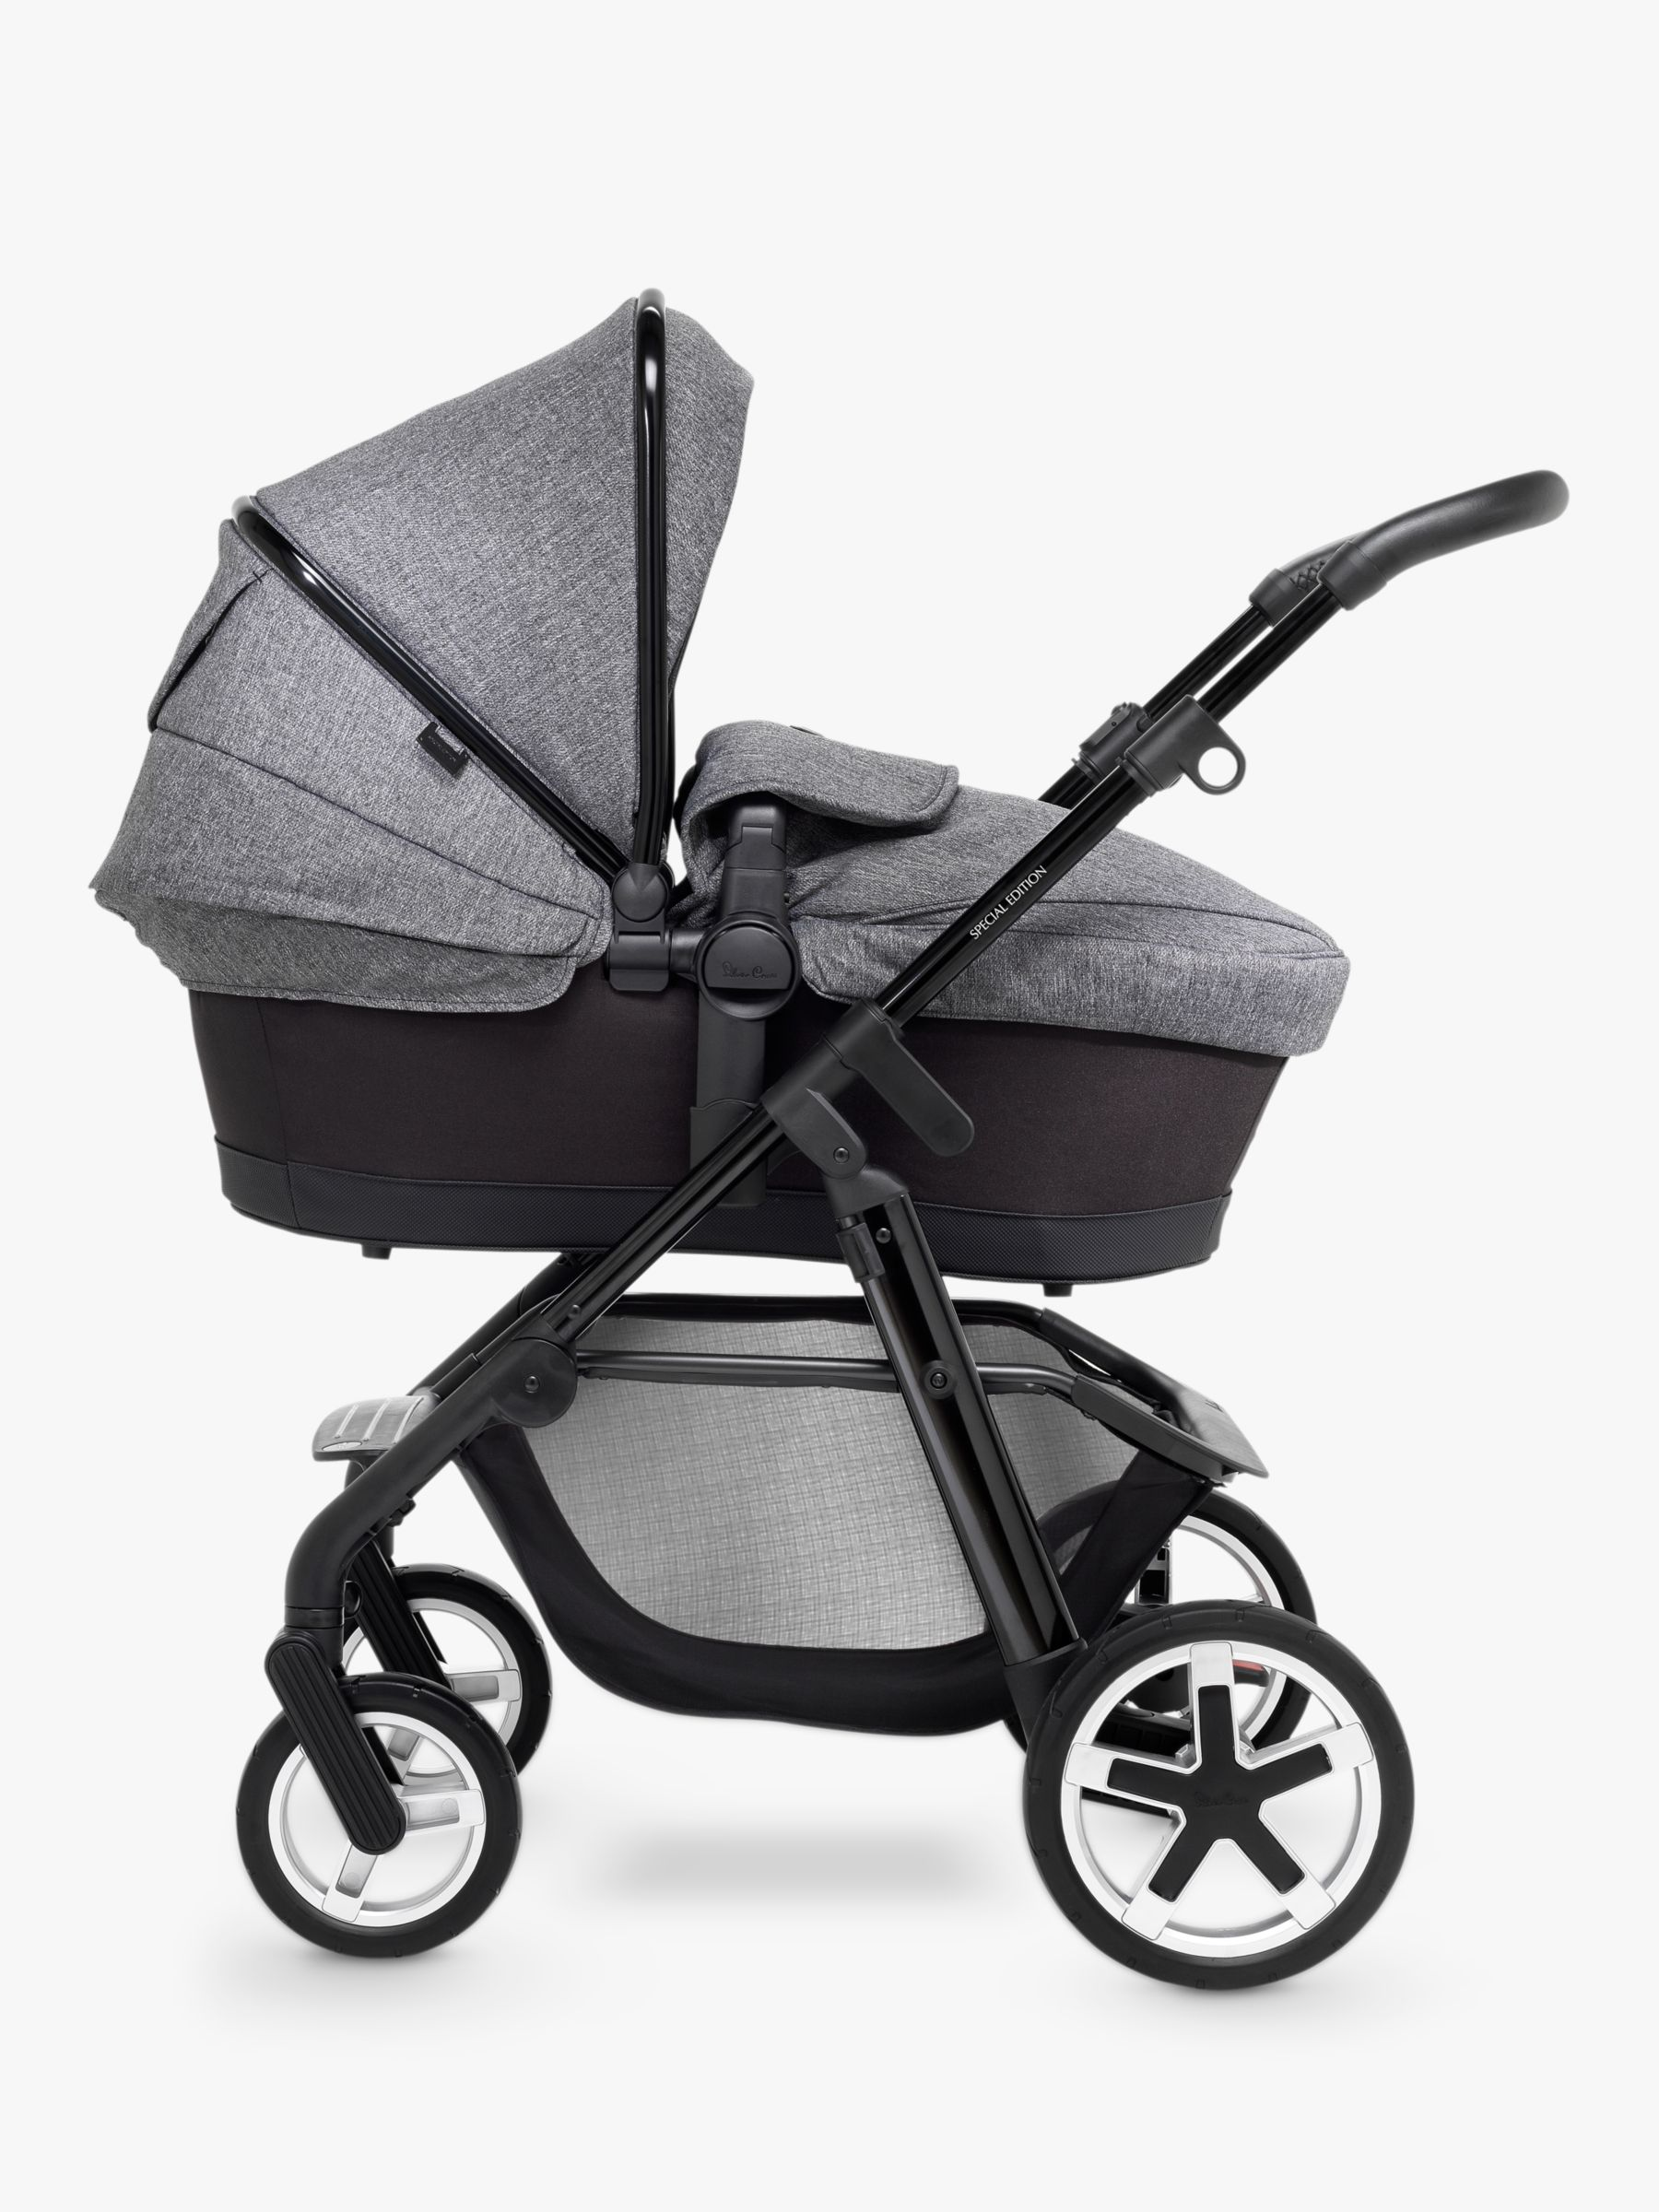 Baby Prams For Sale Uk Silver Cross Pioneer Exclusive Package Pushchair Monomarque